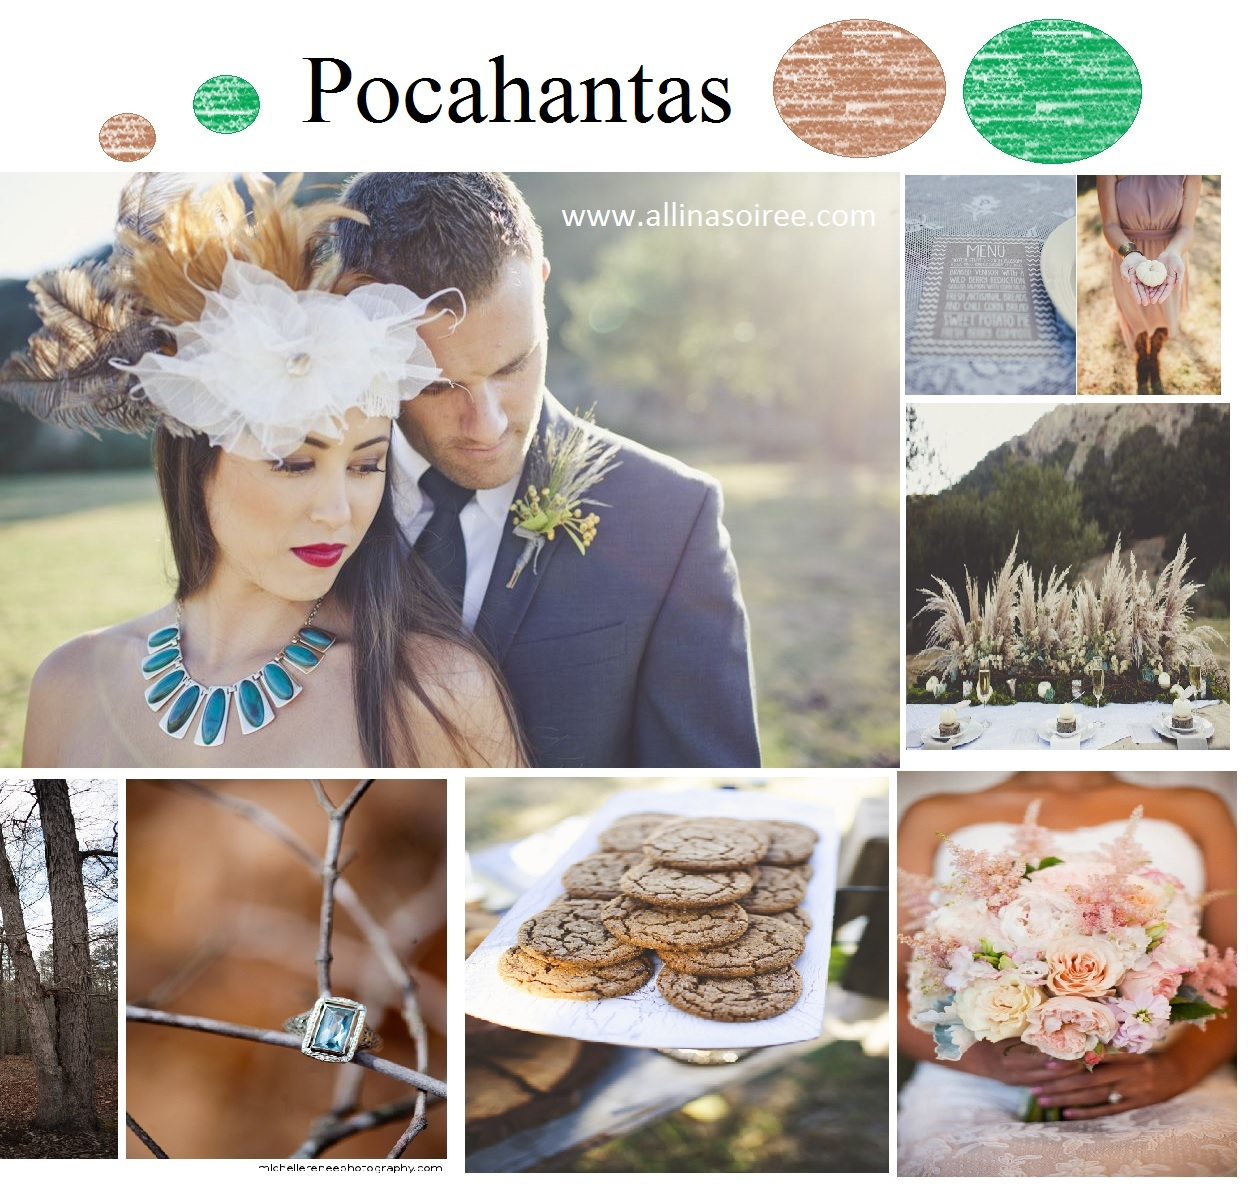 pocahantas wedding ideas / www.allinasoiree.com